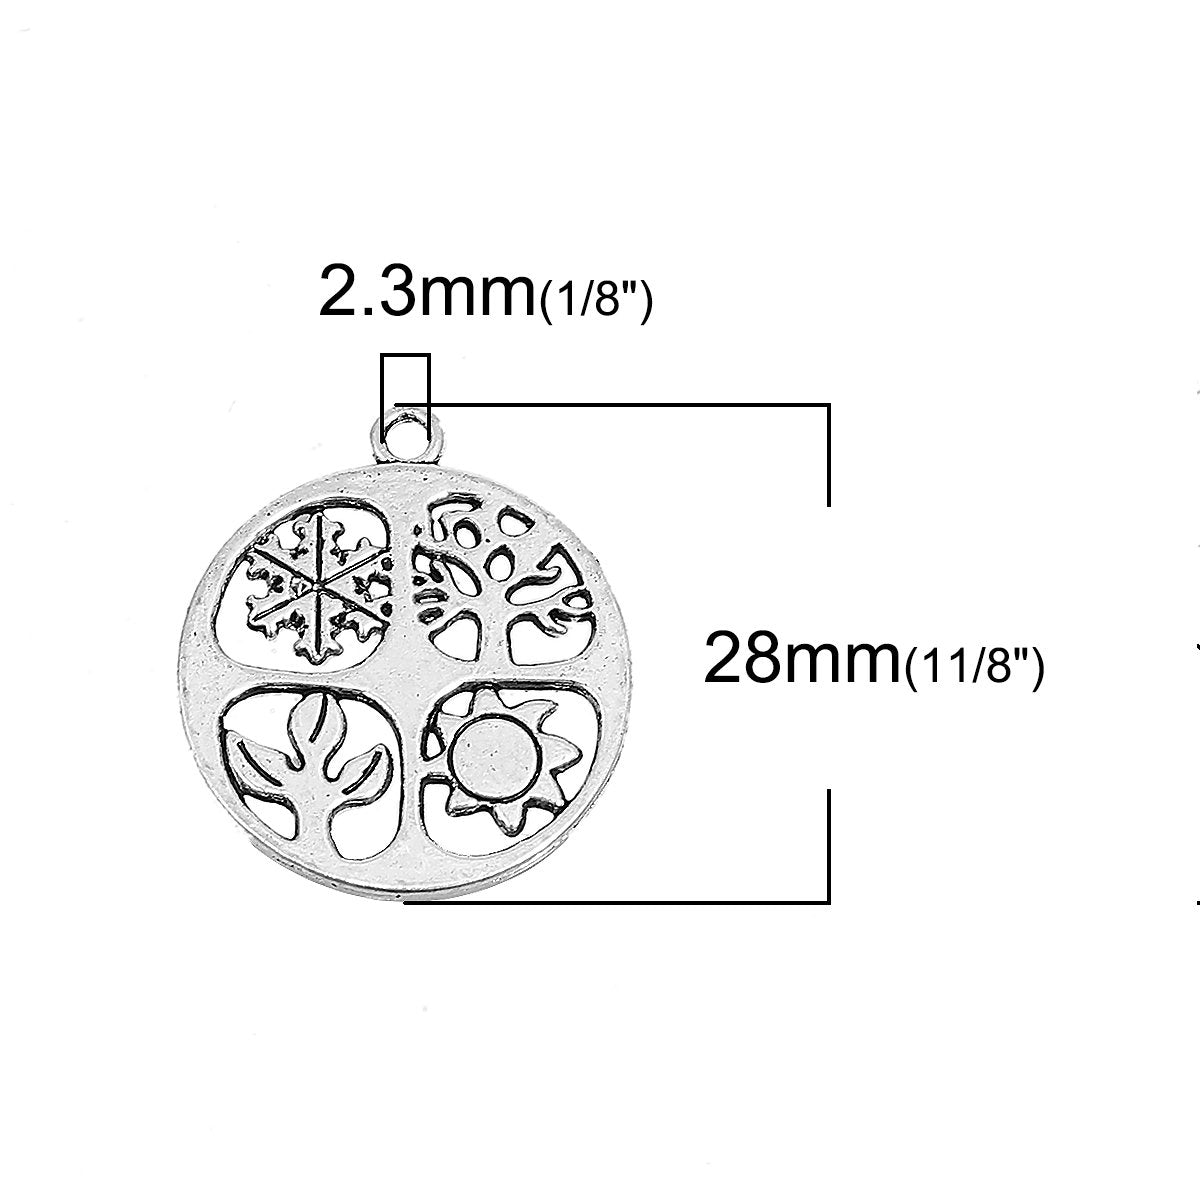 5 Silver 4 Seasons Charm Pendant -  25mm 1 inch in Diameter - Tree of Life Metal Charm Pendant